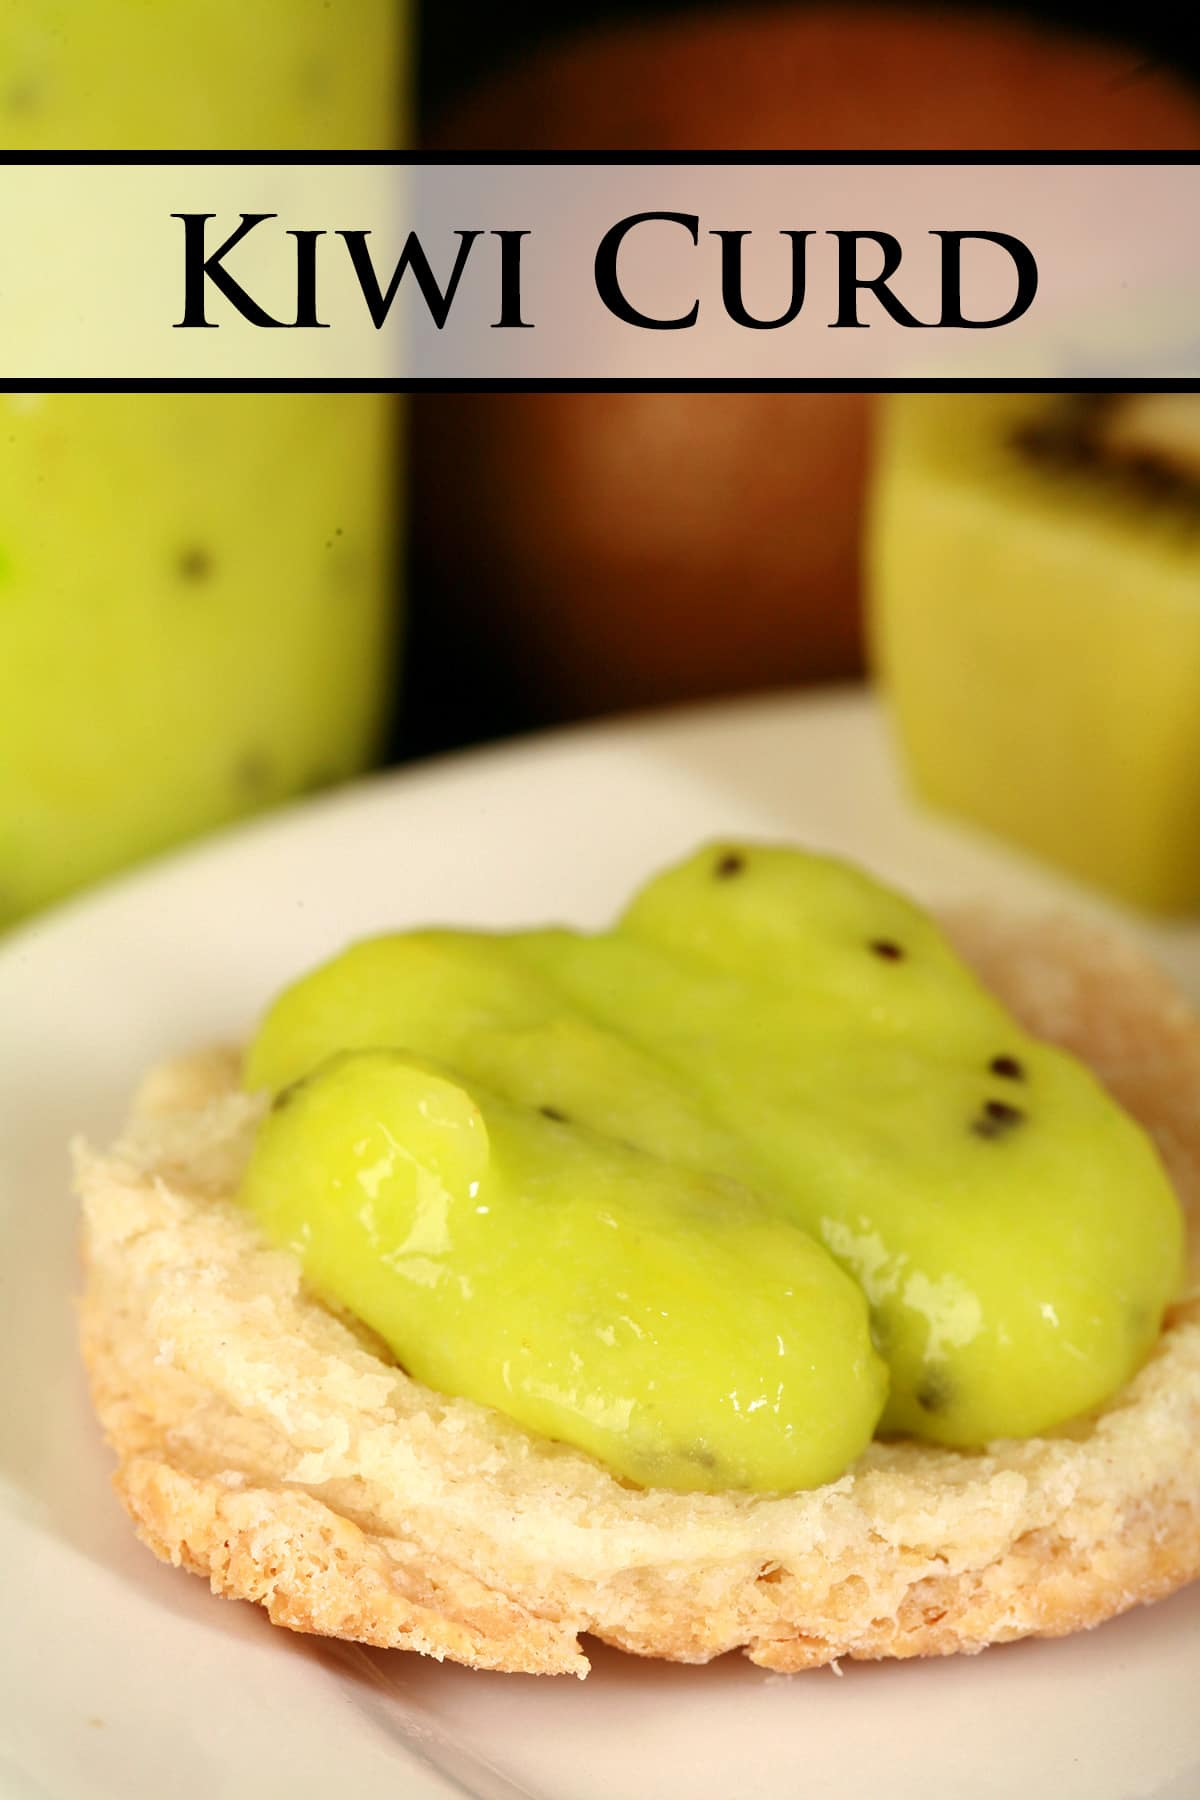 A close up view of a biscuit topped with kiwifruit curd.